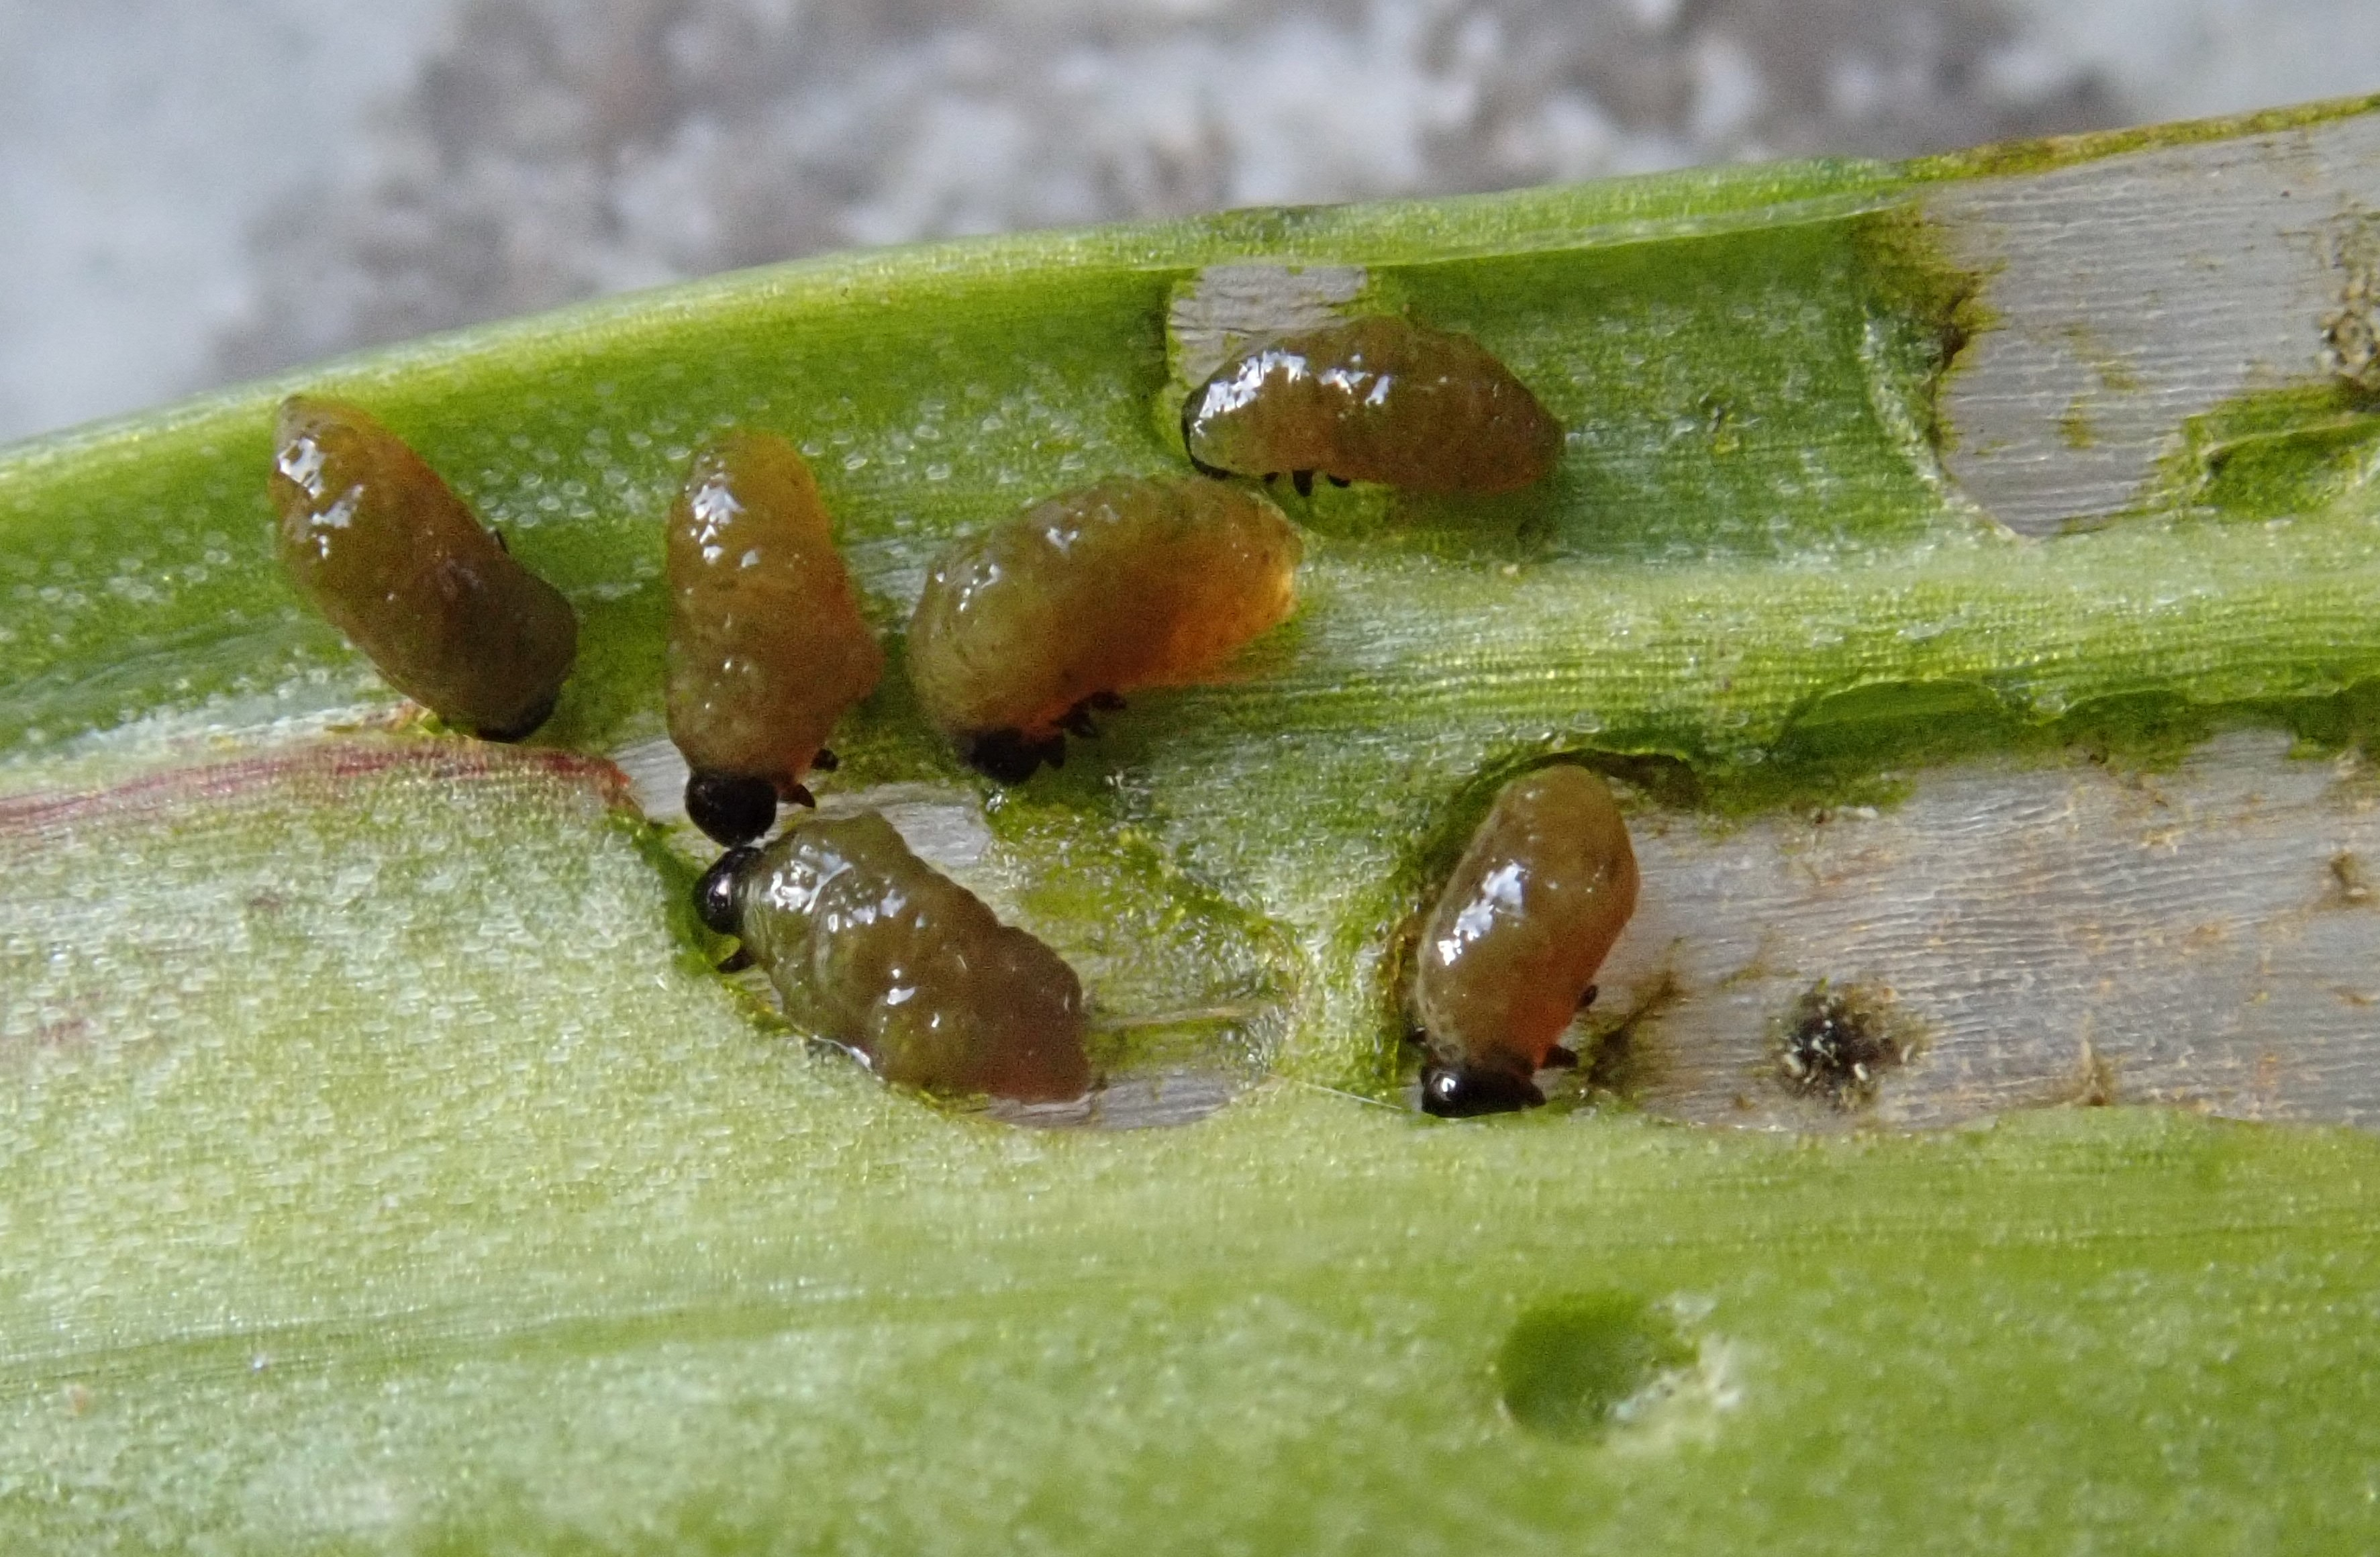 Lily beetle grubs munching on lily leaves